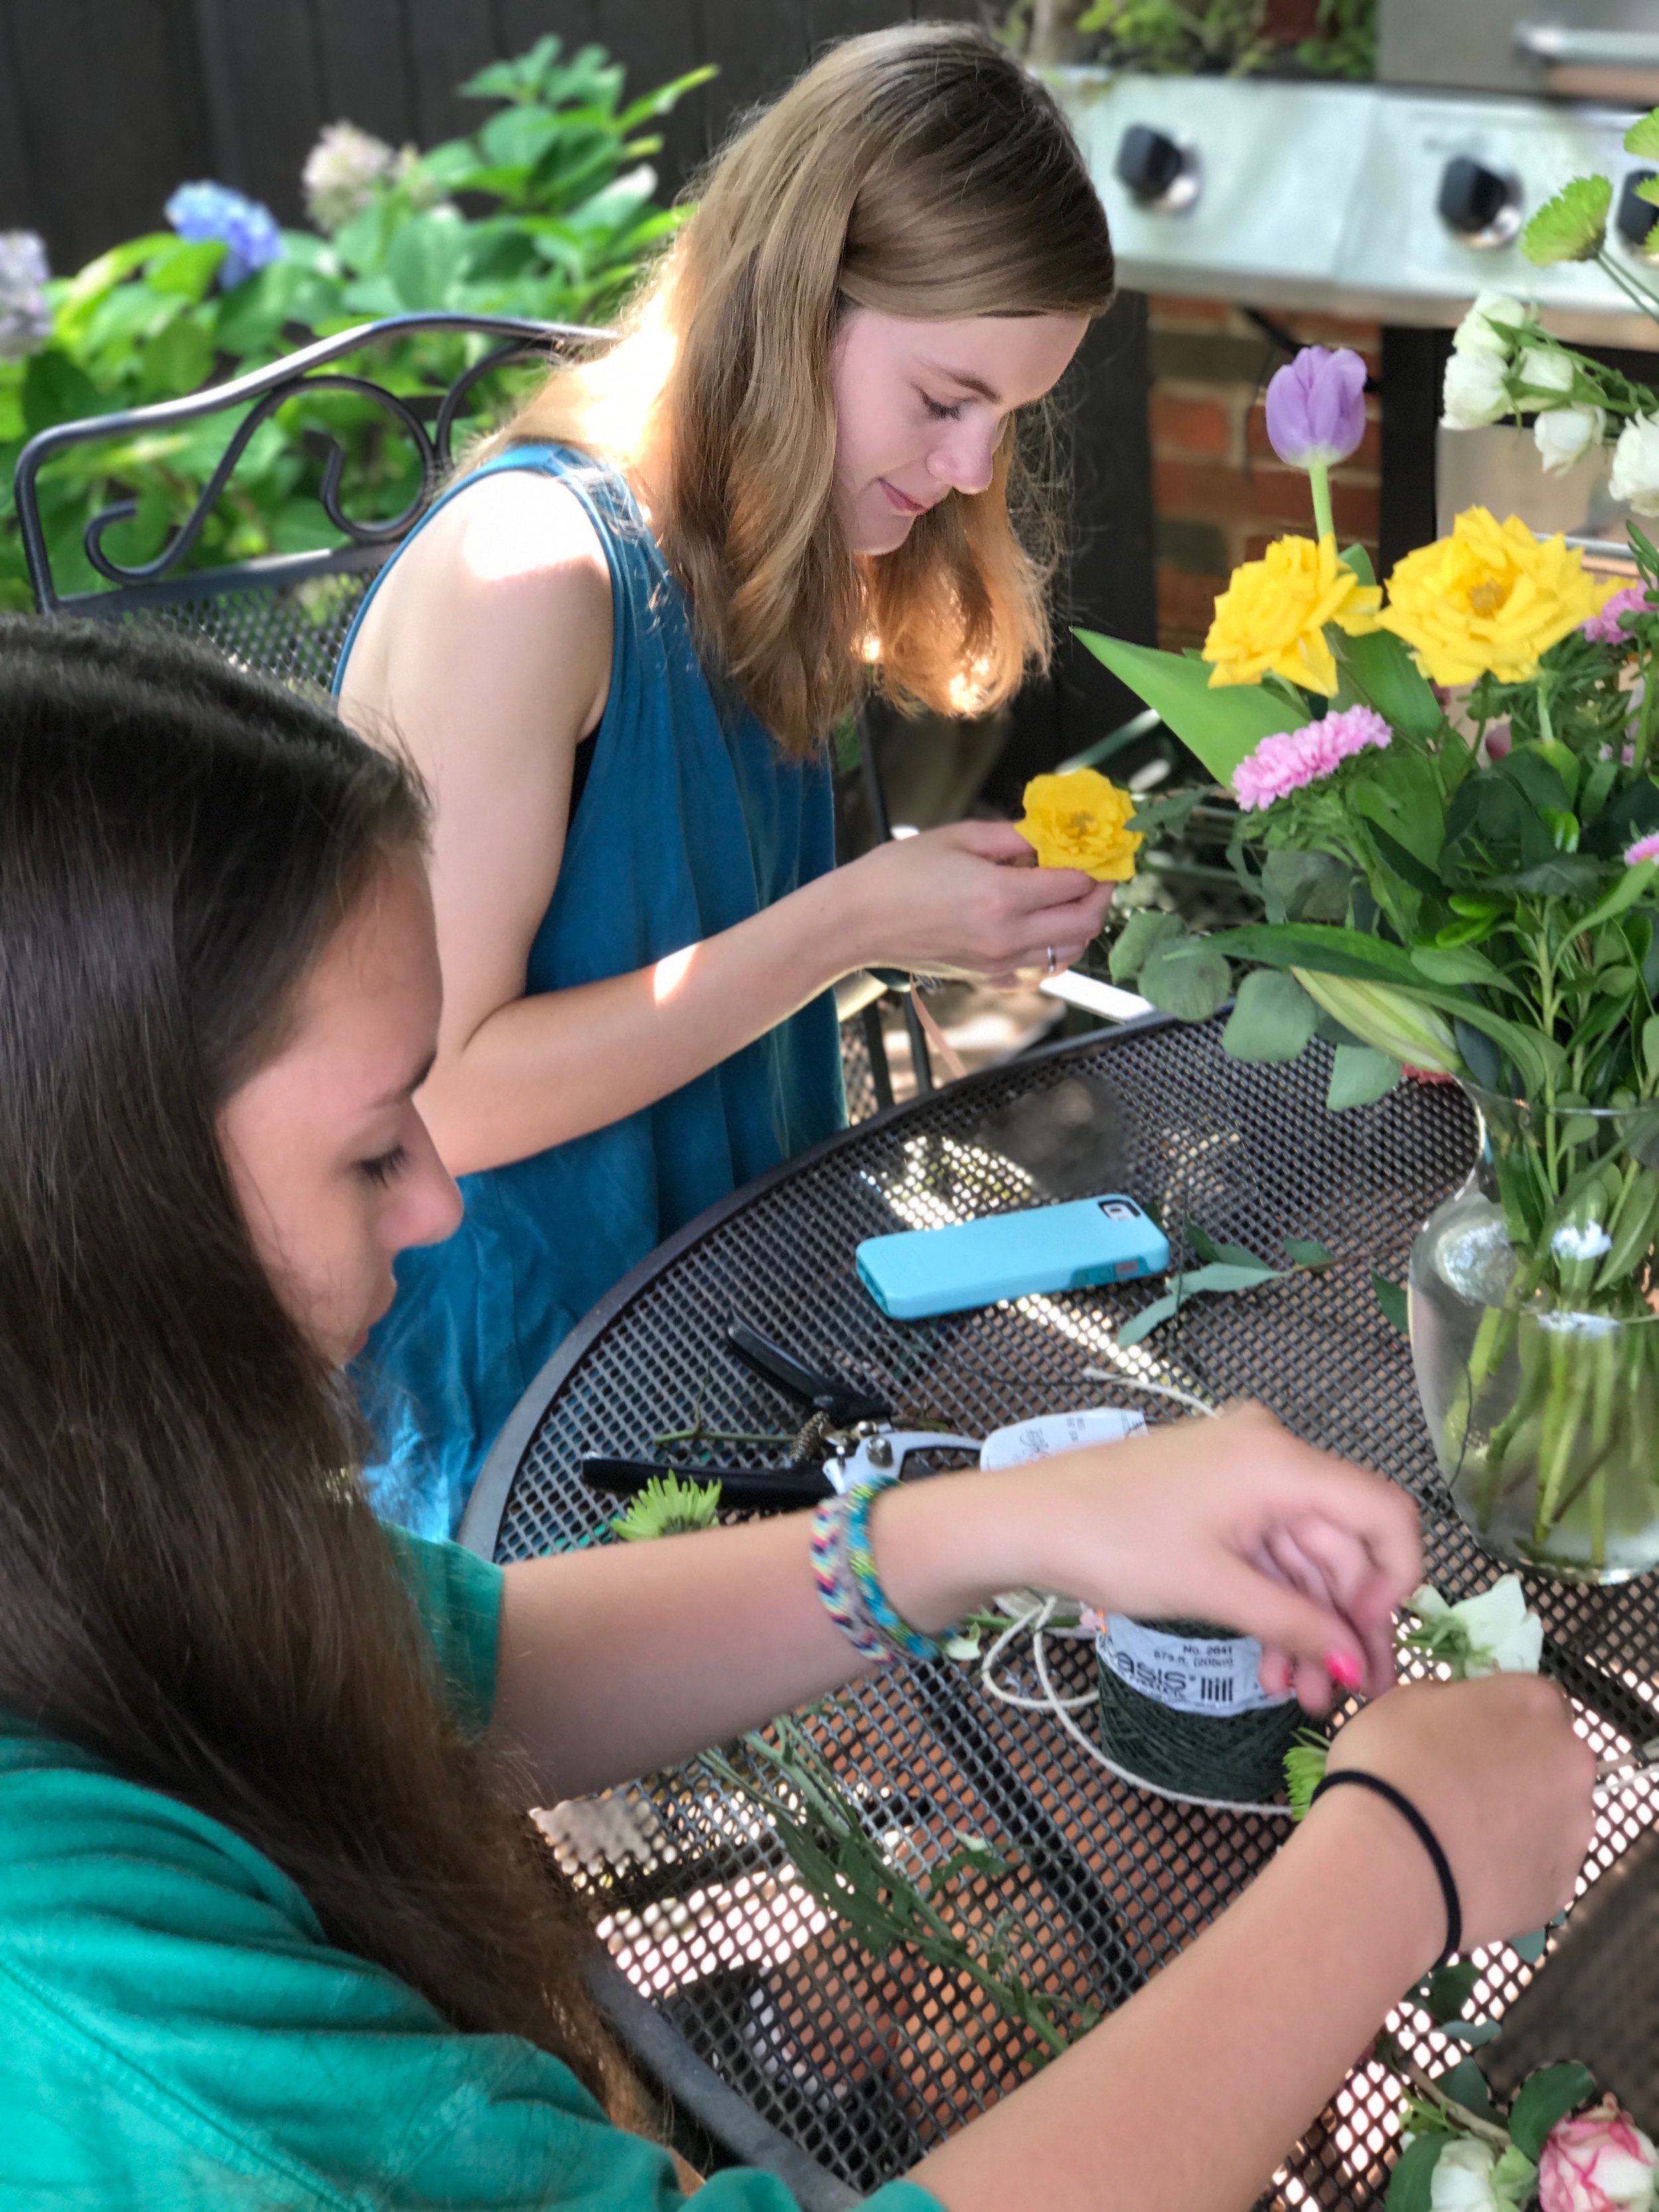 These girls are working hard on some flower crowns!